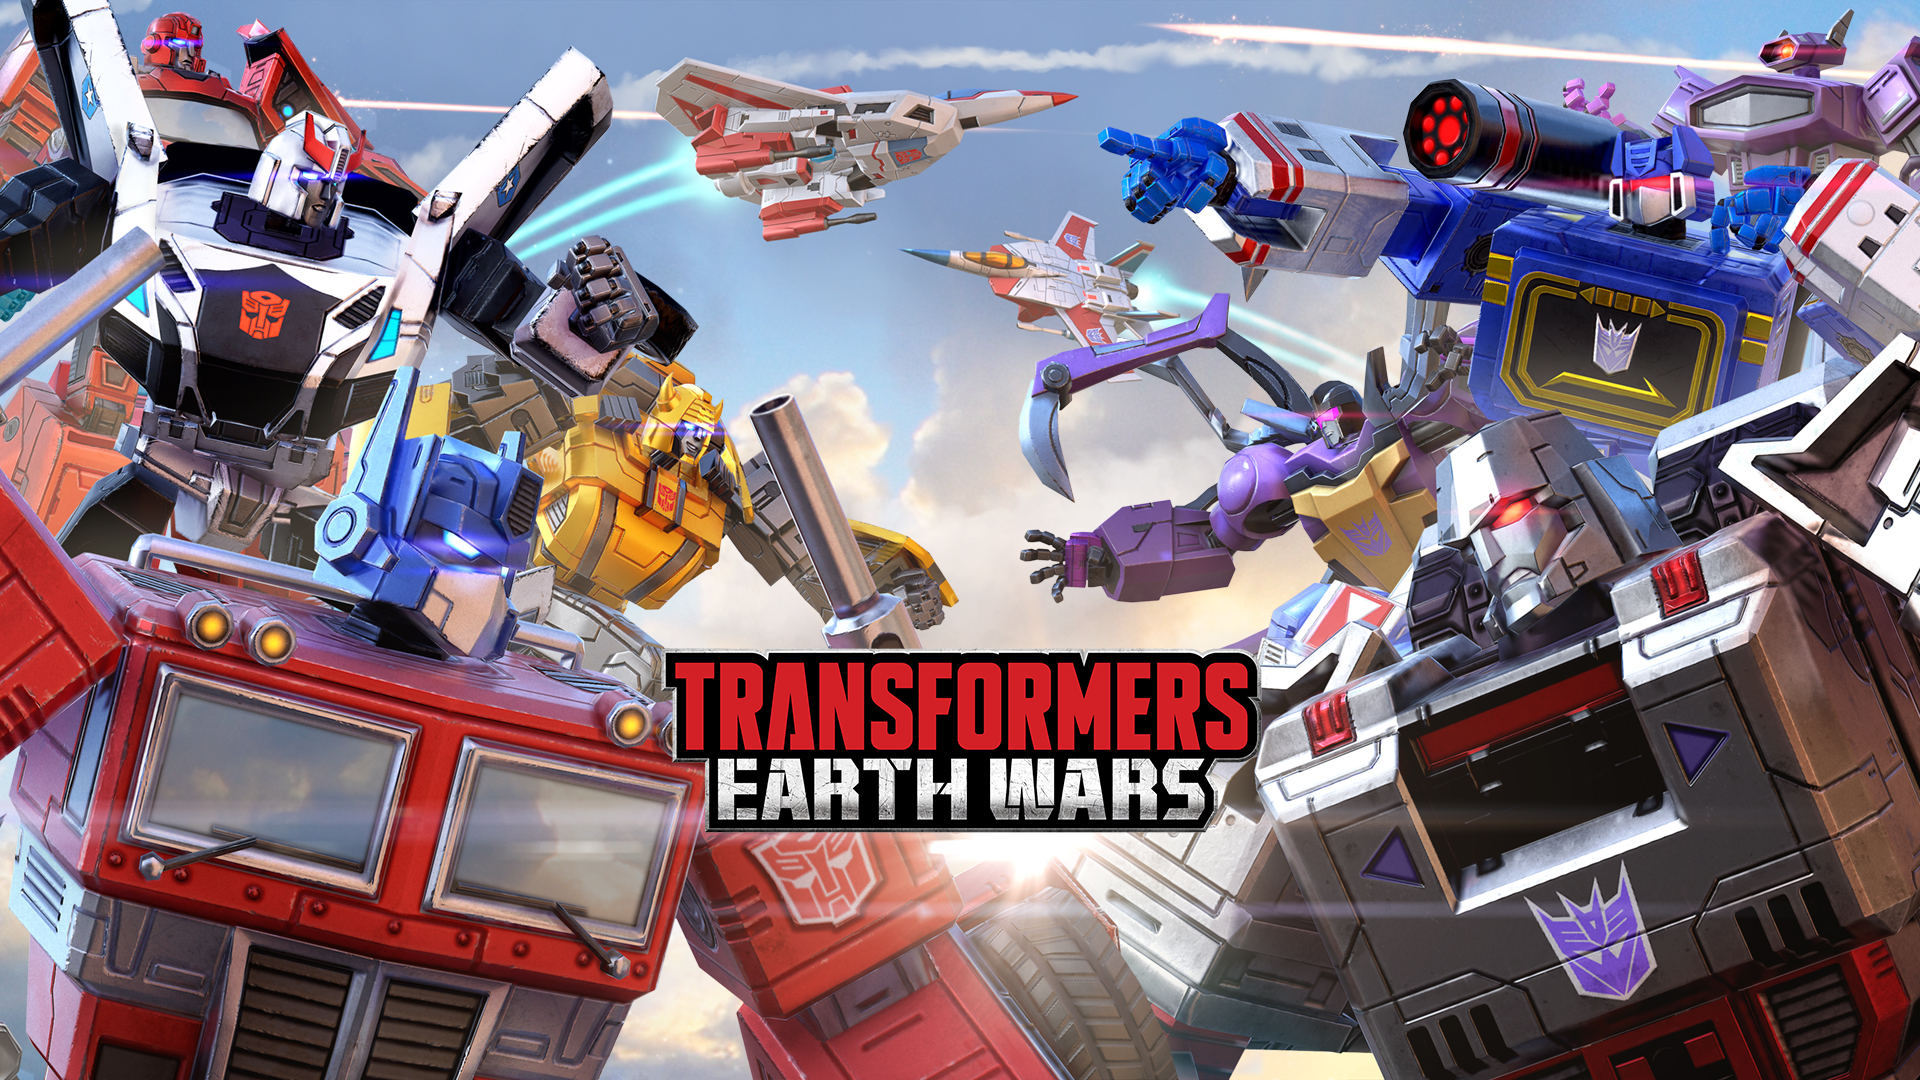 Transformers News: Transformers: Earth Wars - Fire on the Mountain Event